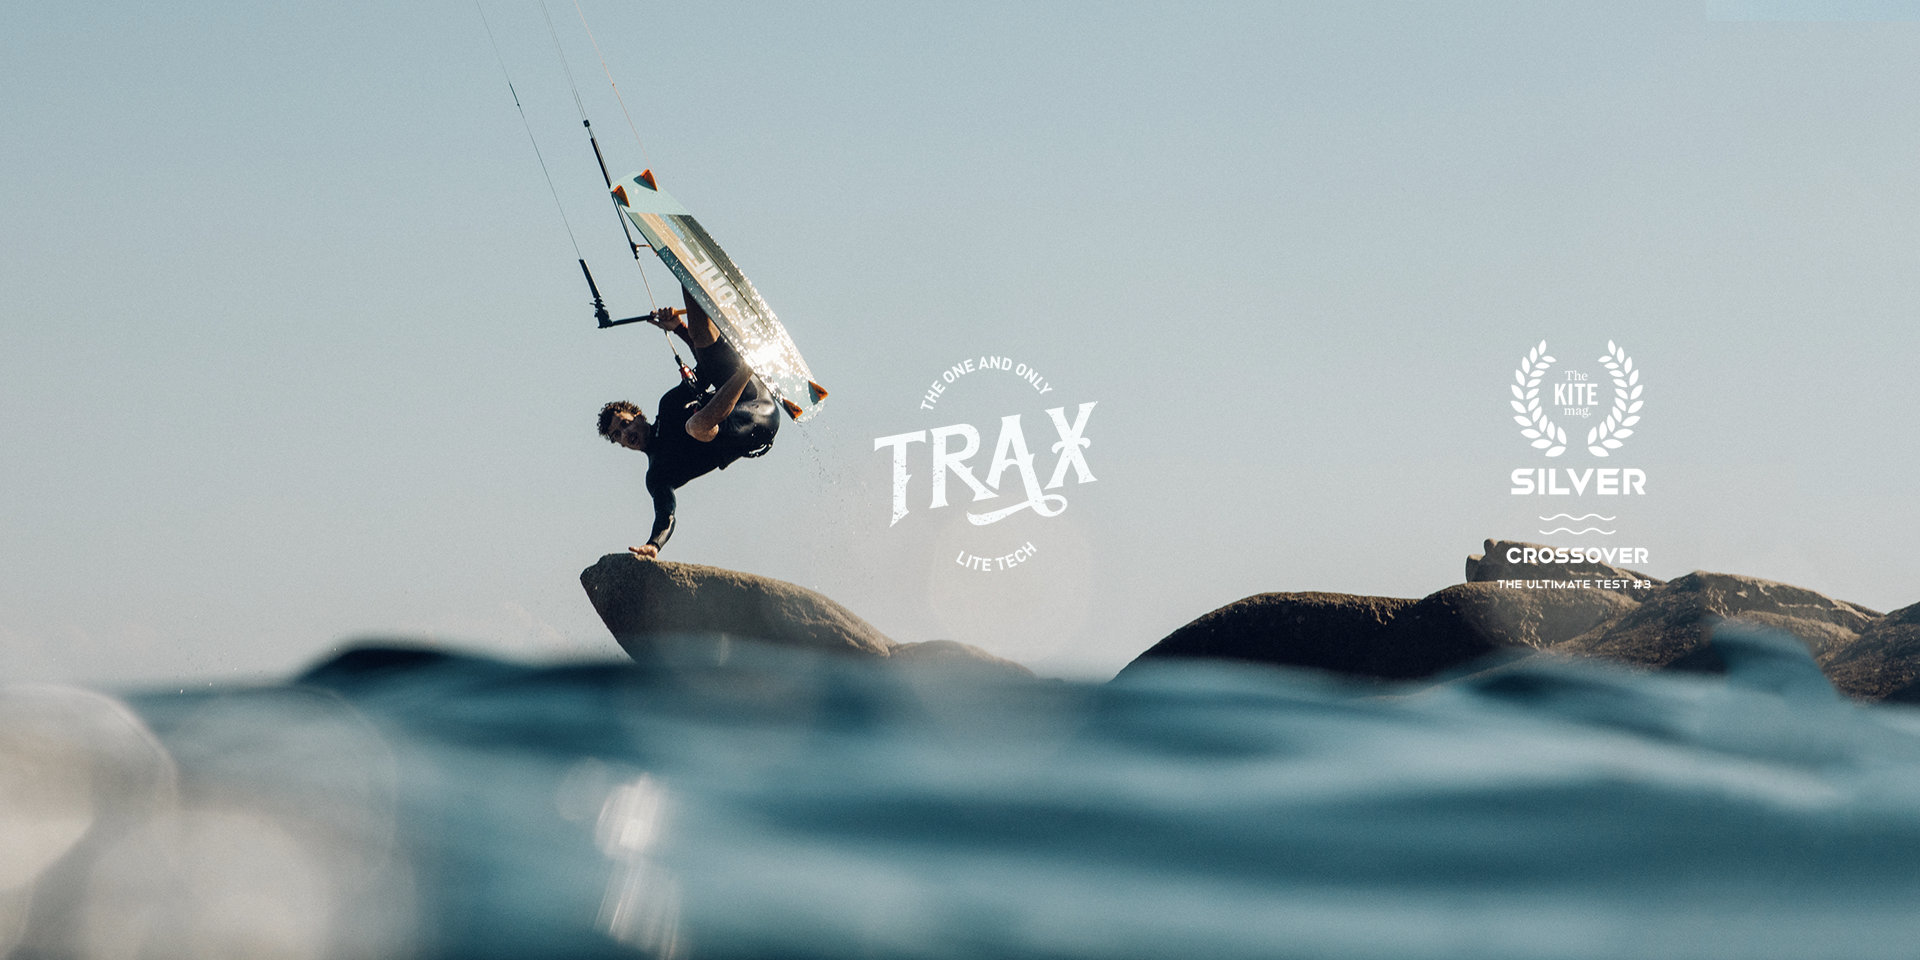 Trax wins silver medal